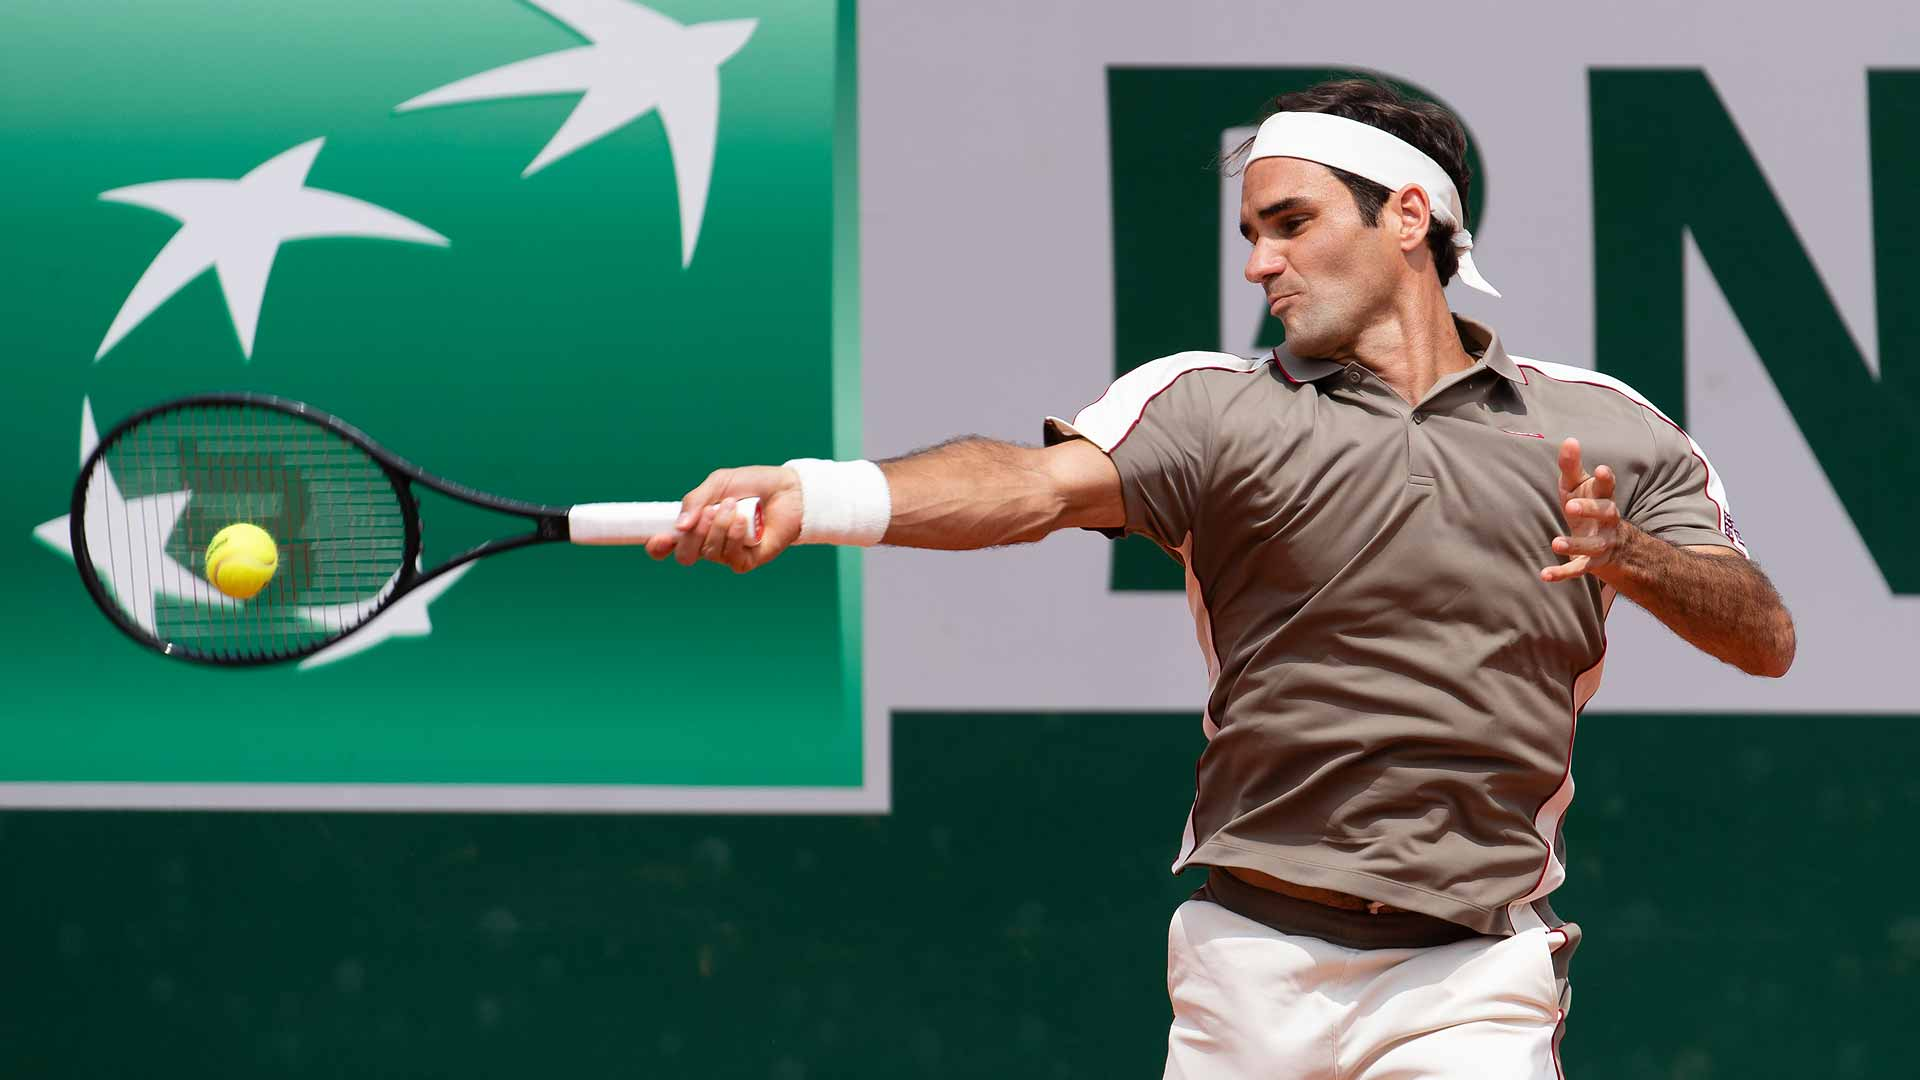 ATP Halle, Federer in finale con Goffin: out Berrettini